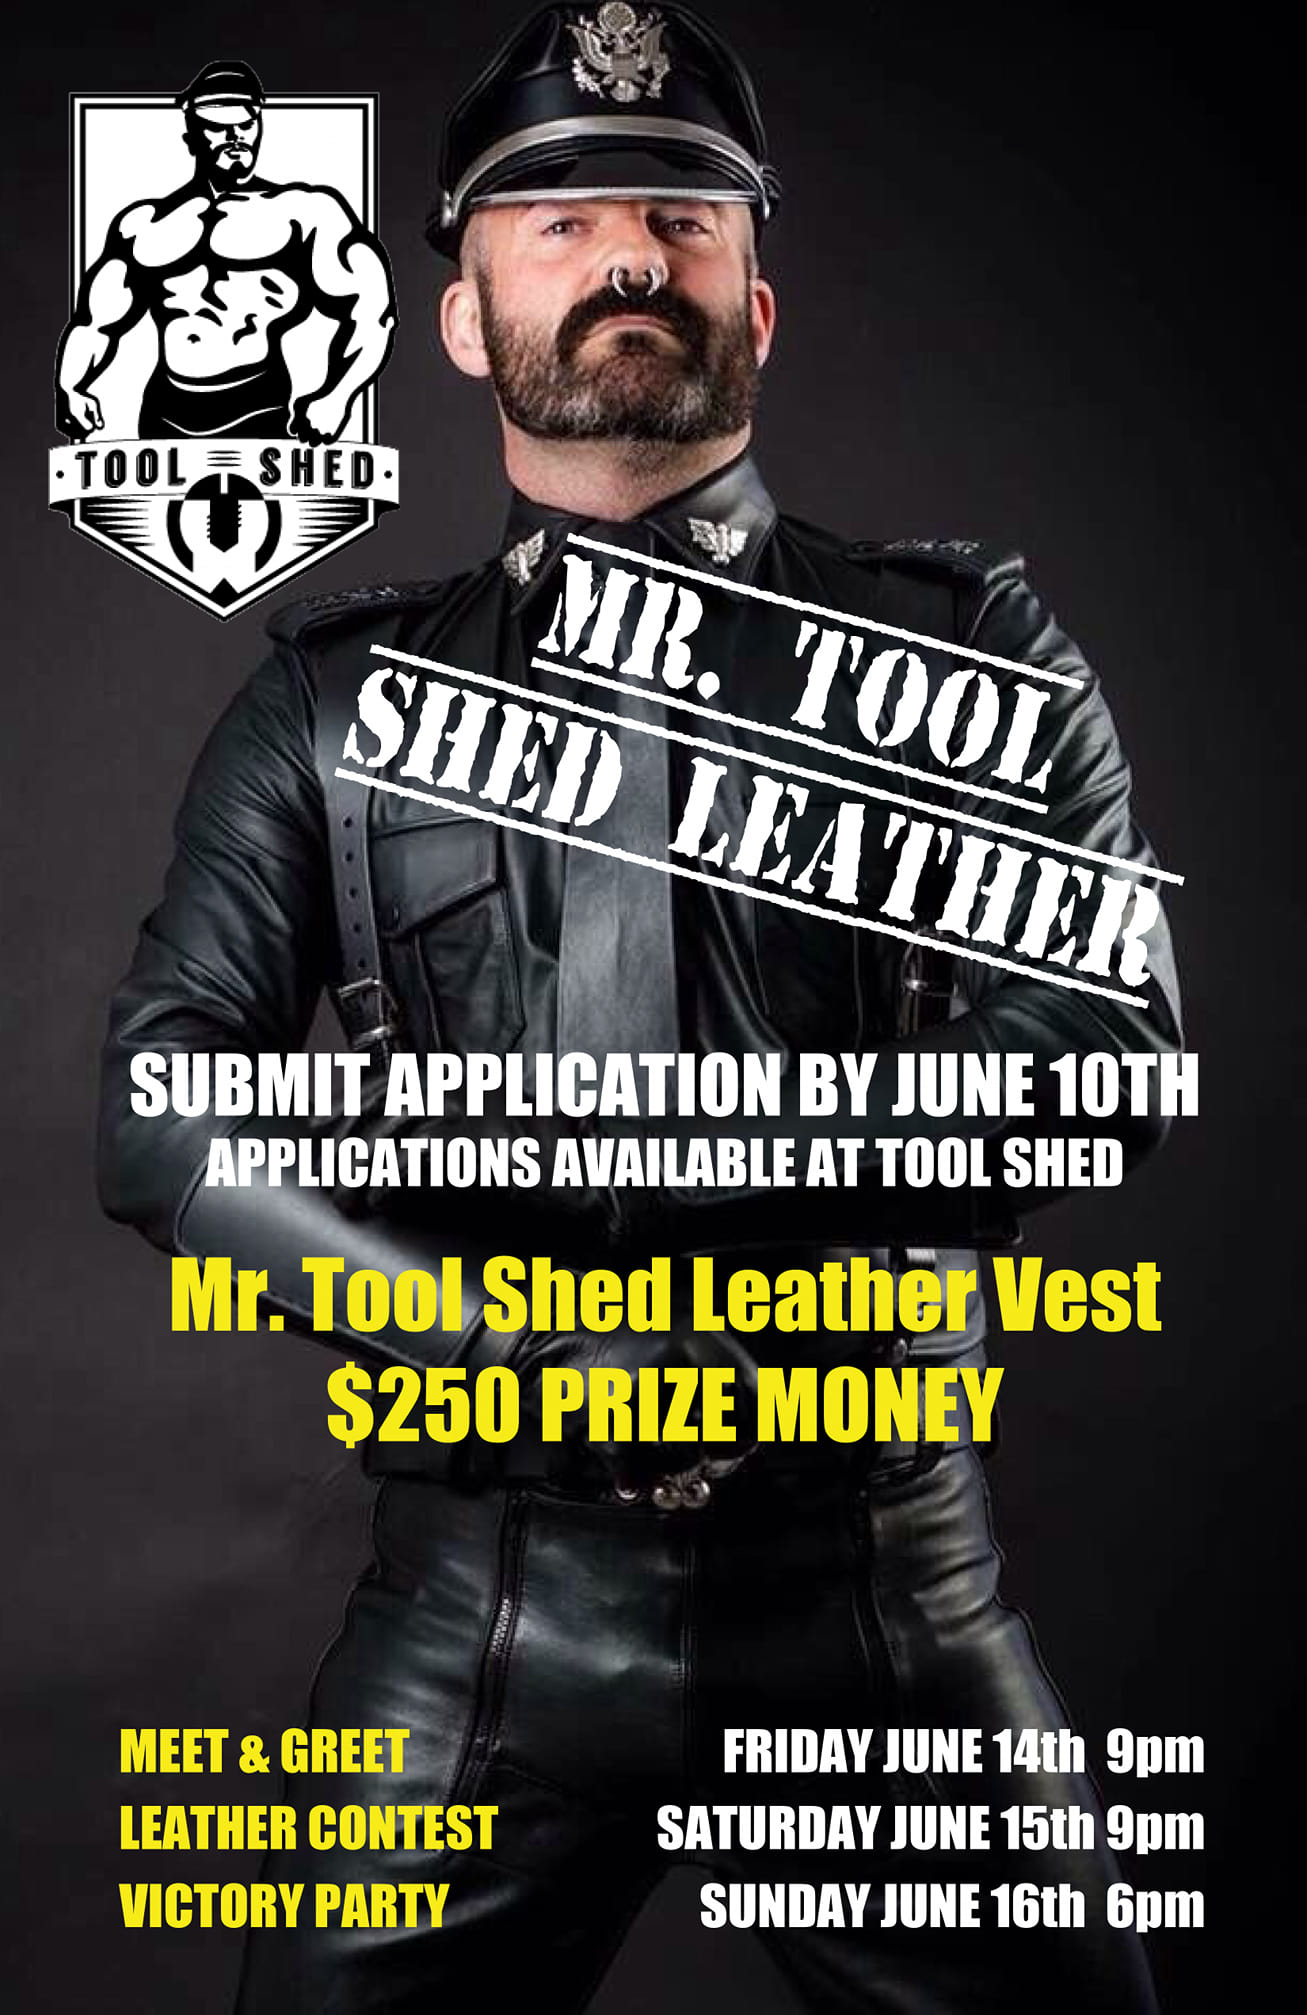 Mr. Tool Shed Leather